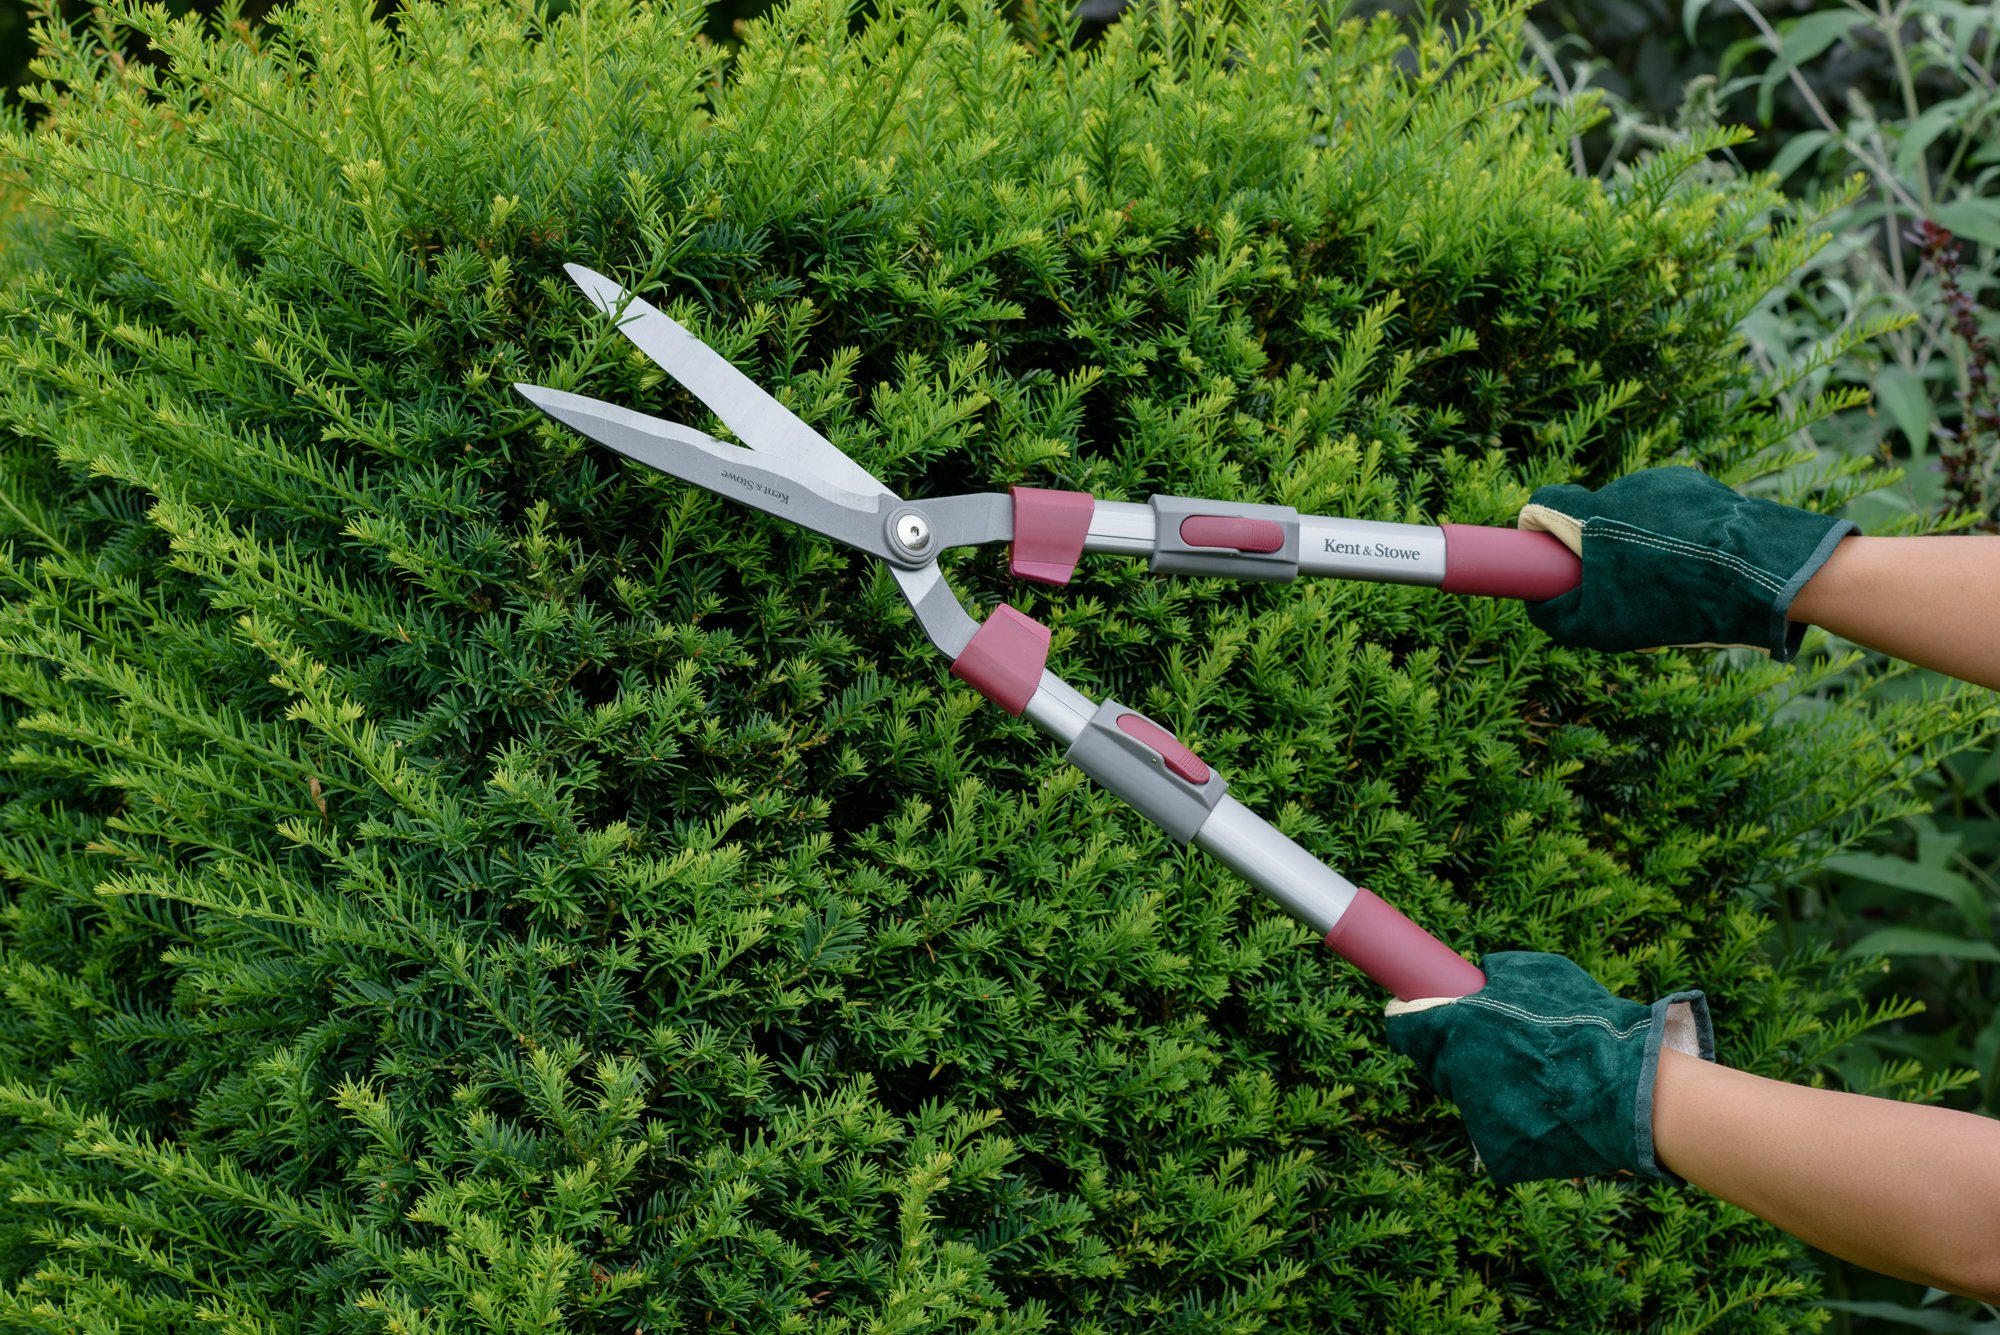 Kent and Stowe Telescopic Hedge Shear 70100421 by Kent & Stowe (Image #3)